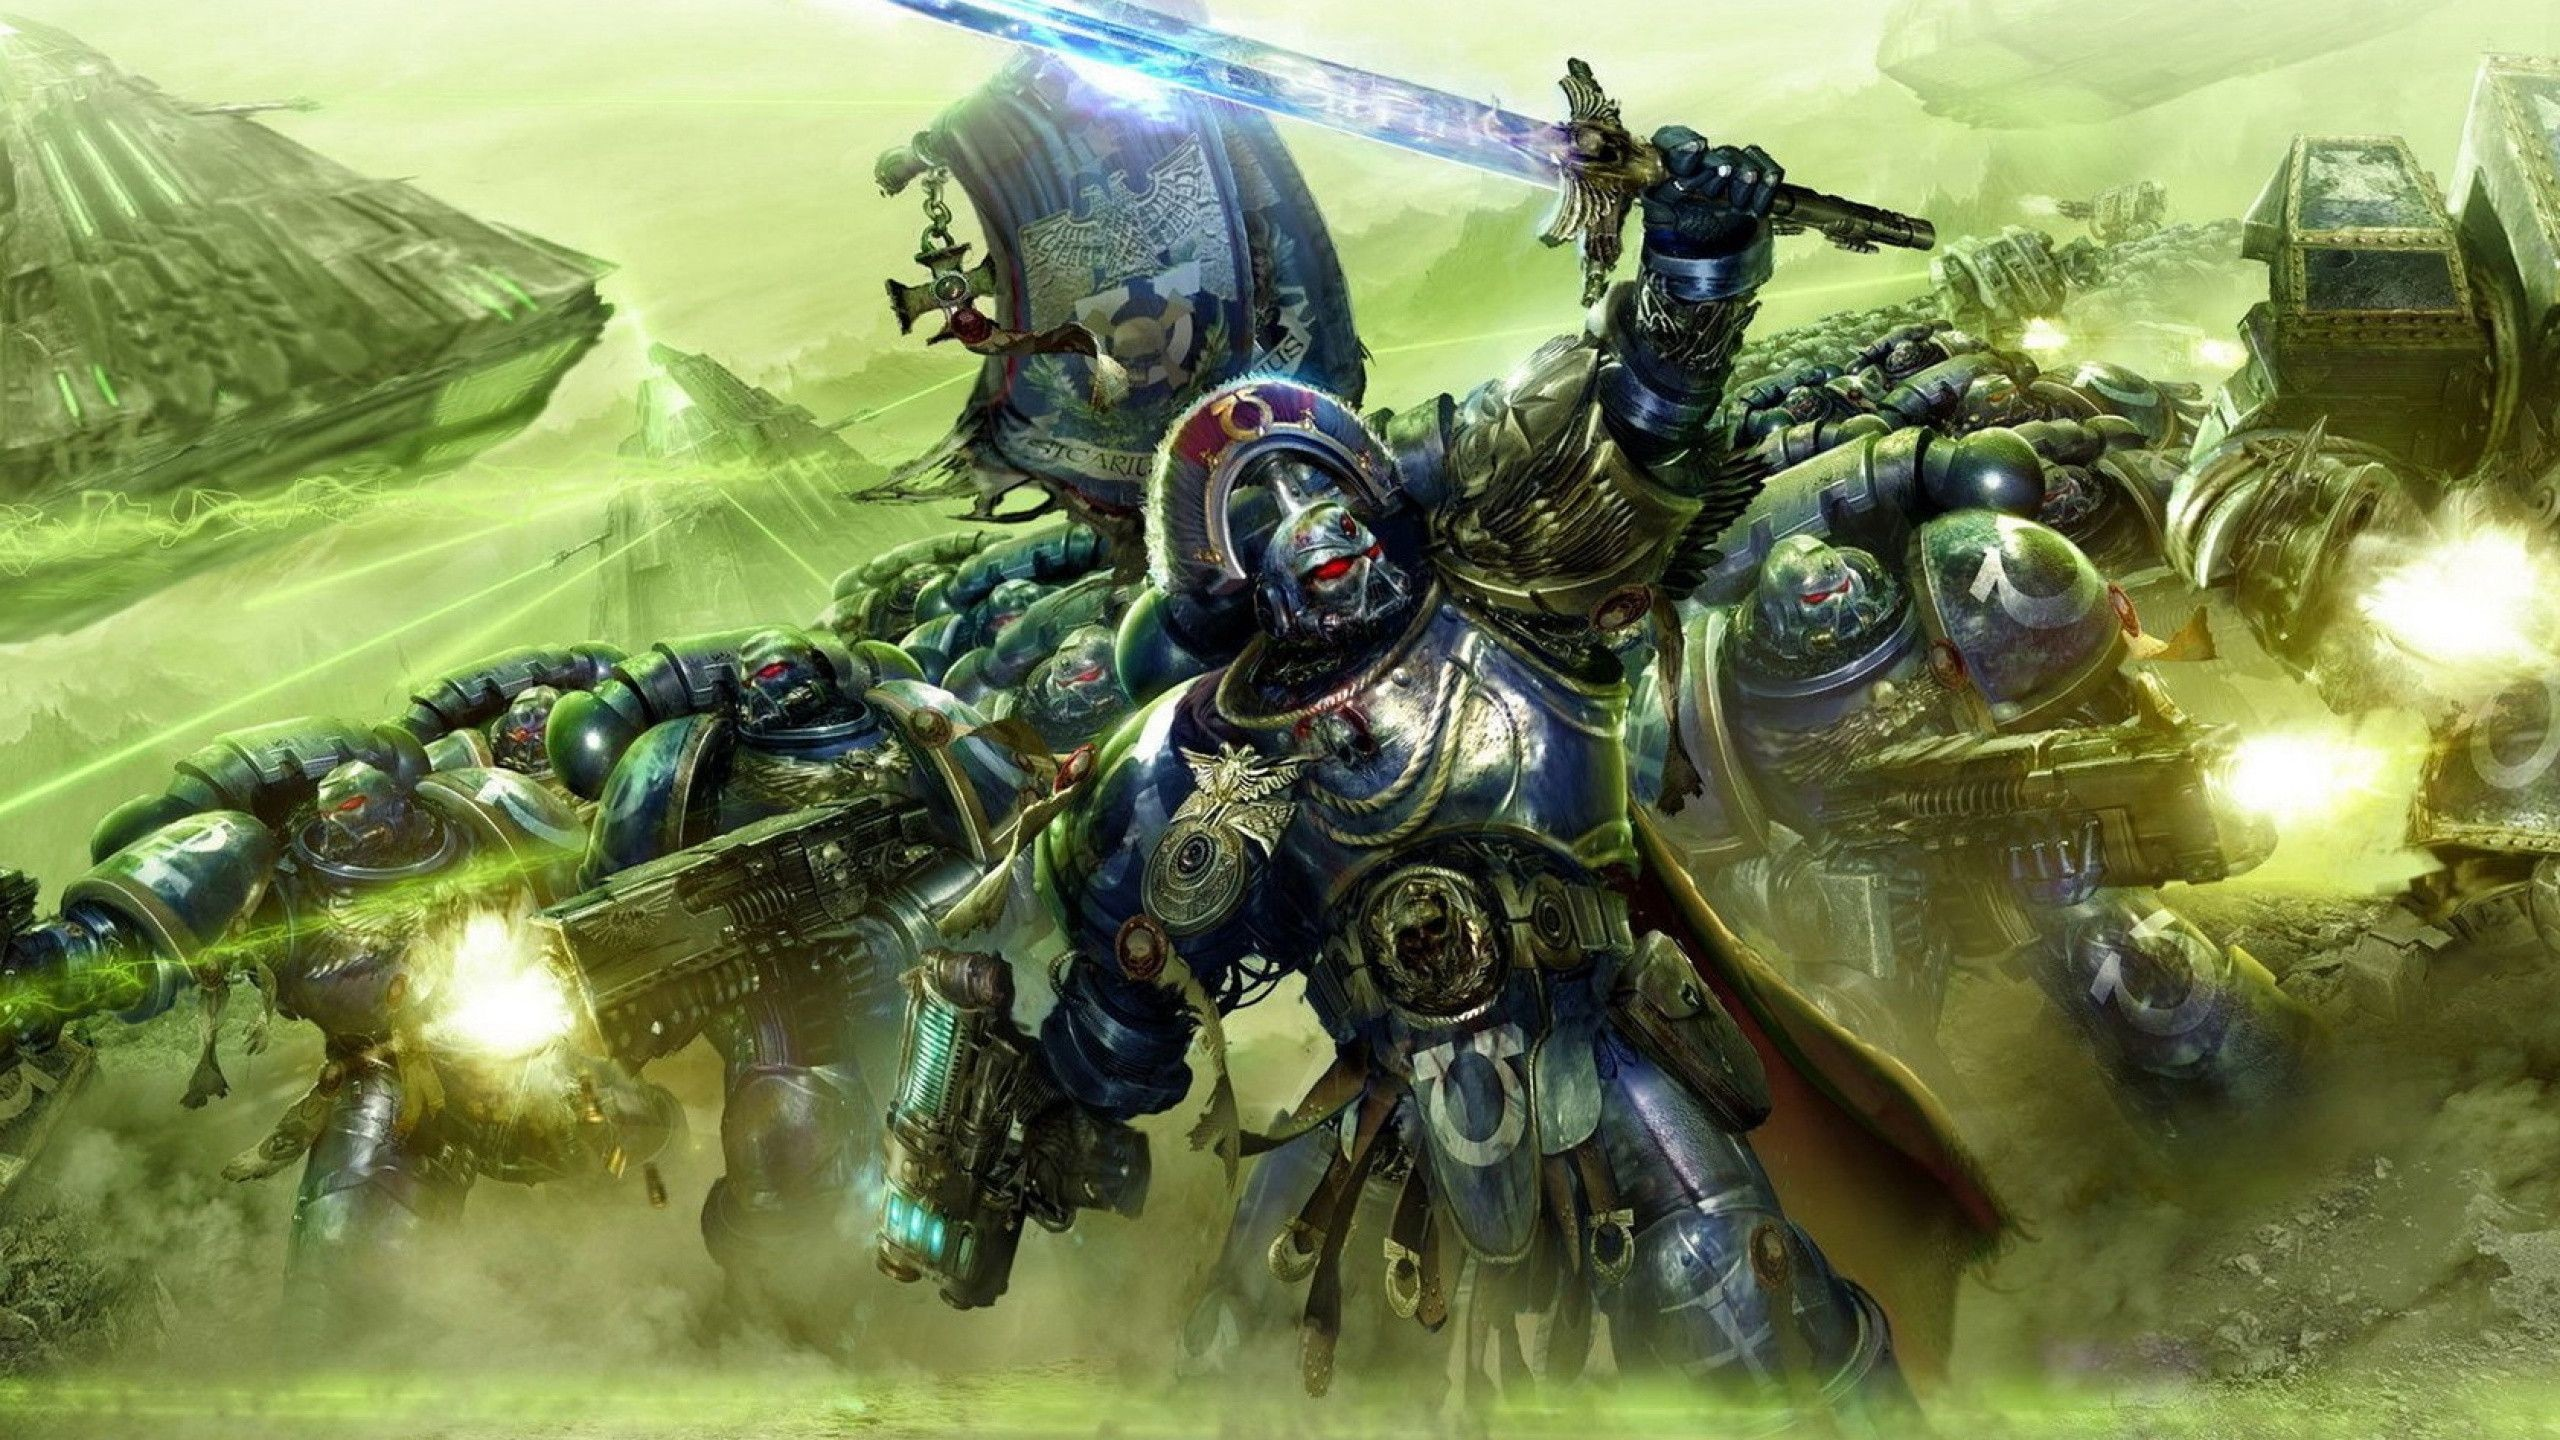 2560x1440 Space Marine Wallpapers Art